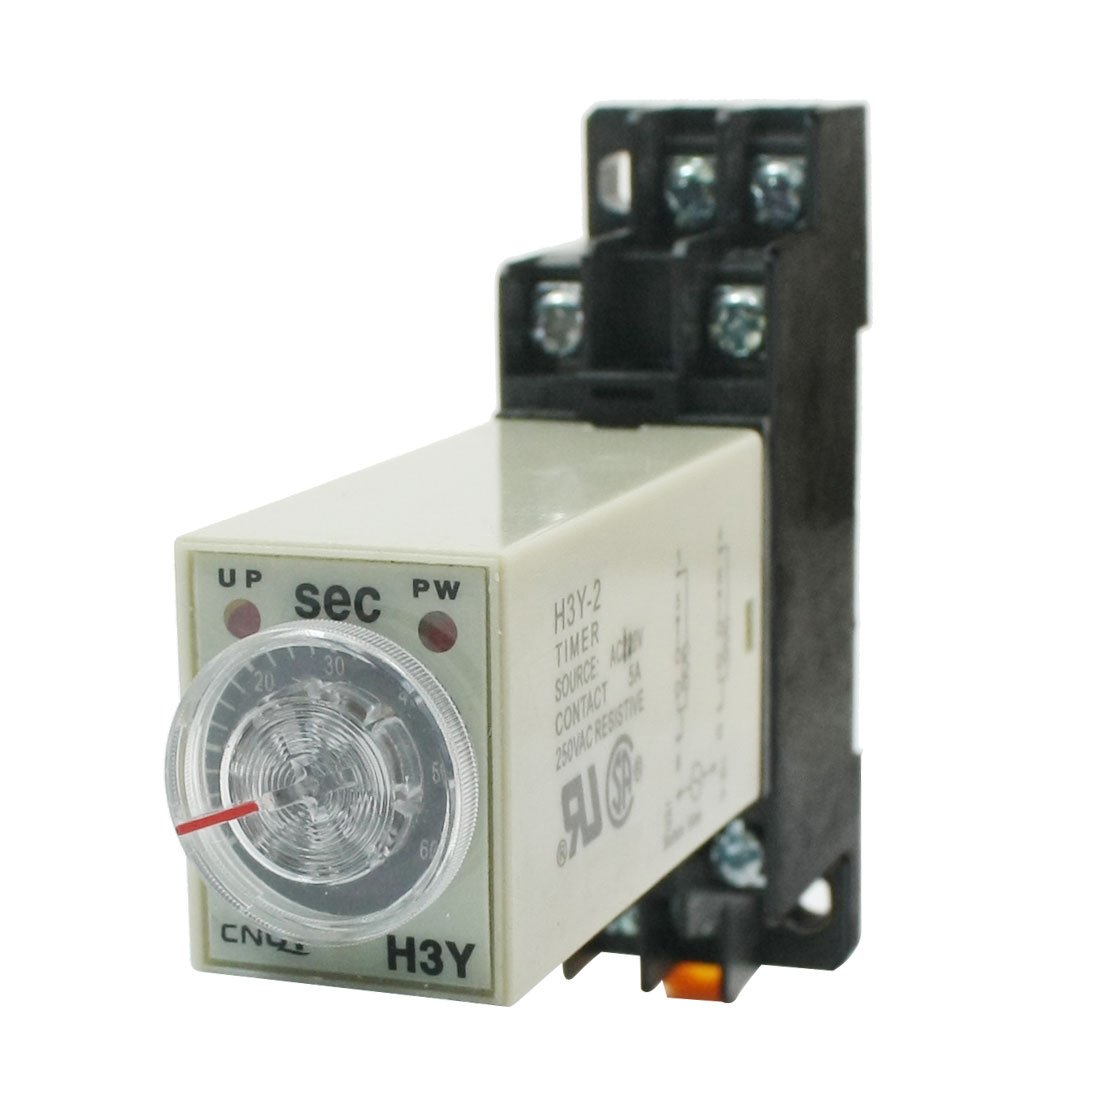 uxcell0-60 Seconds Delay Timer Time Timing Relay AC 110V H3Y-2 w Base socket a14050600ux0201